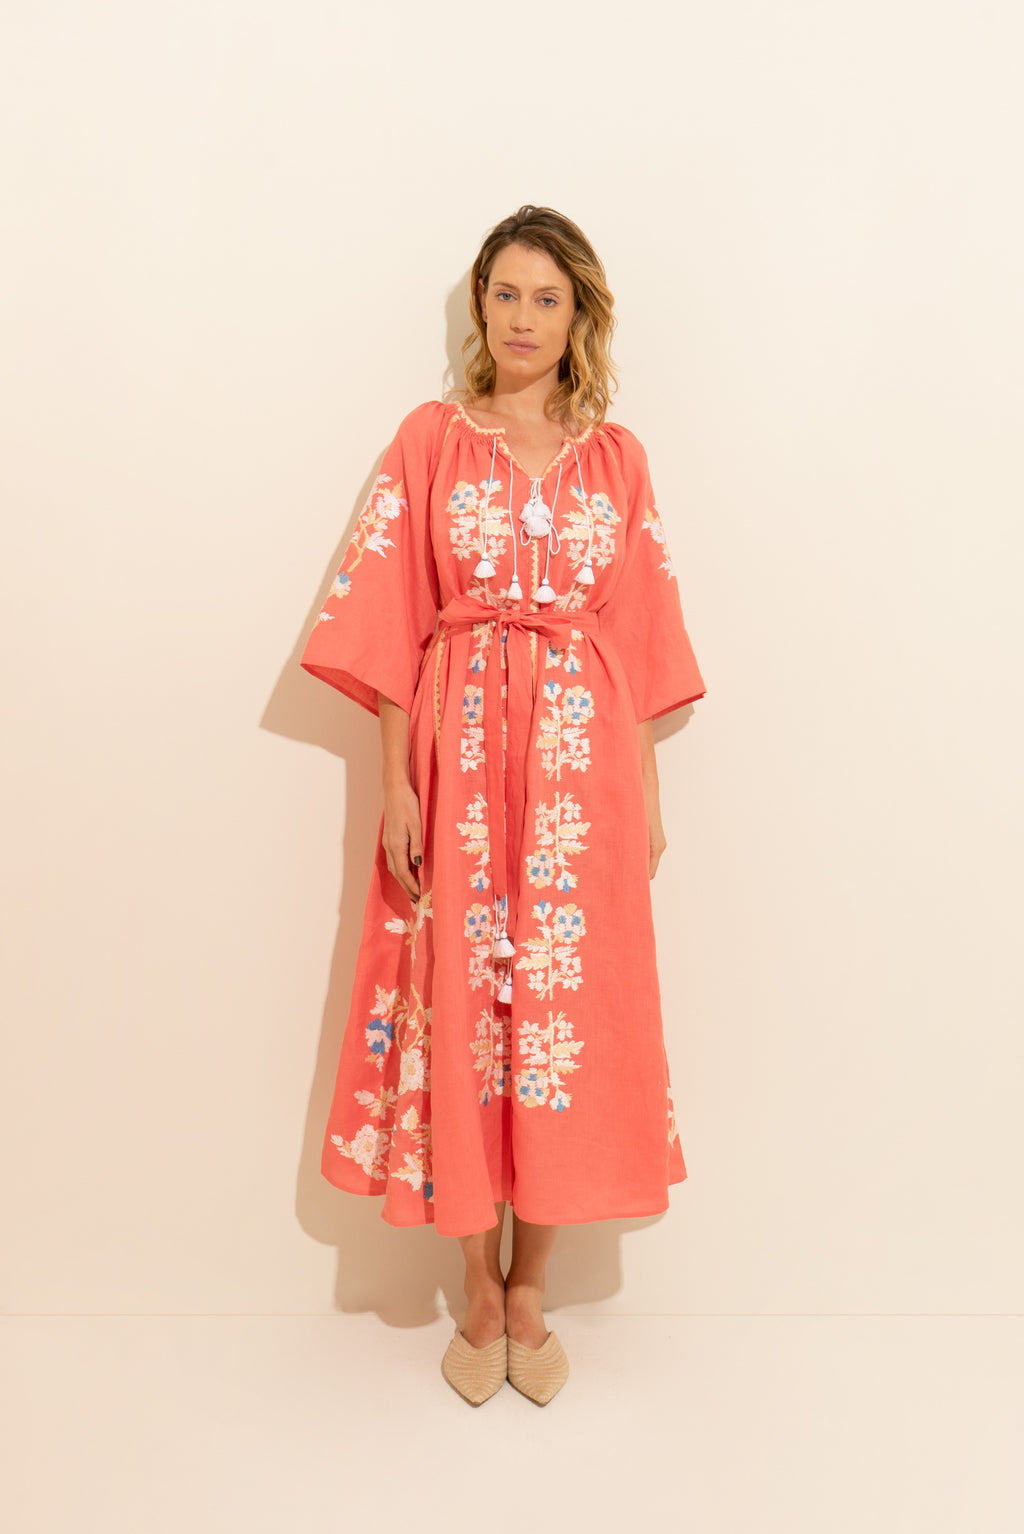 Rose Power Maxi Dress in Navy with Red